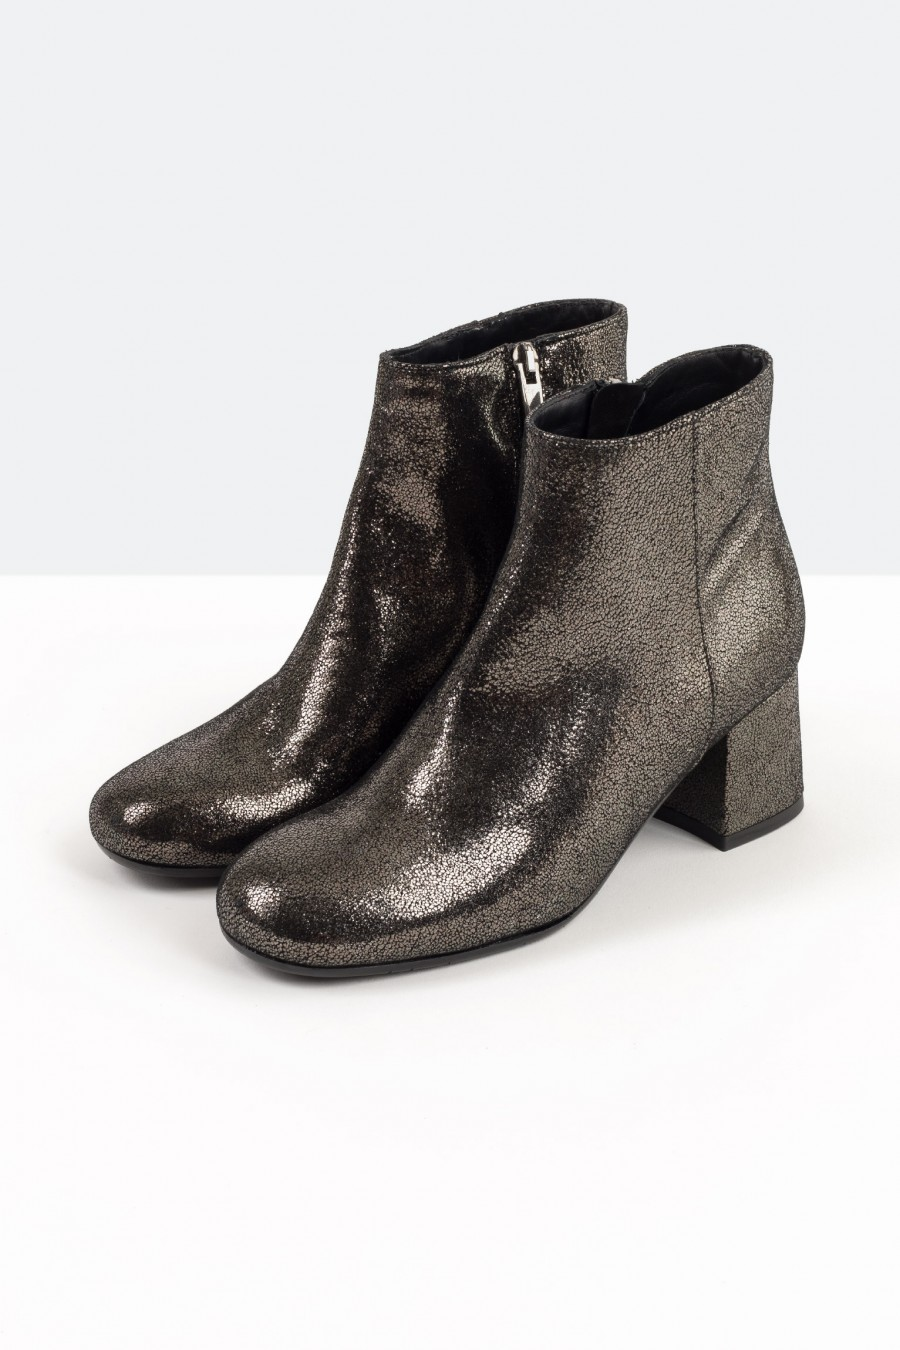 Black metallic ankle boots